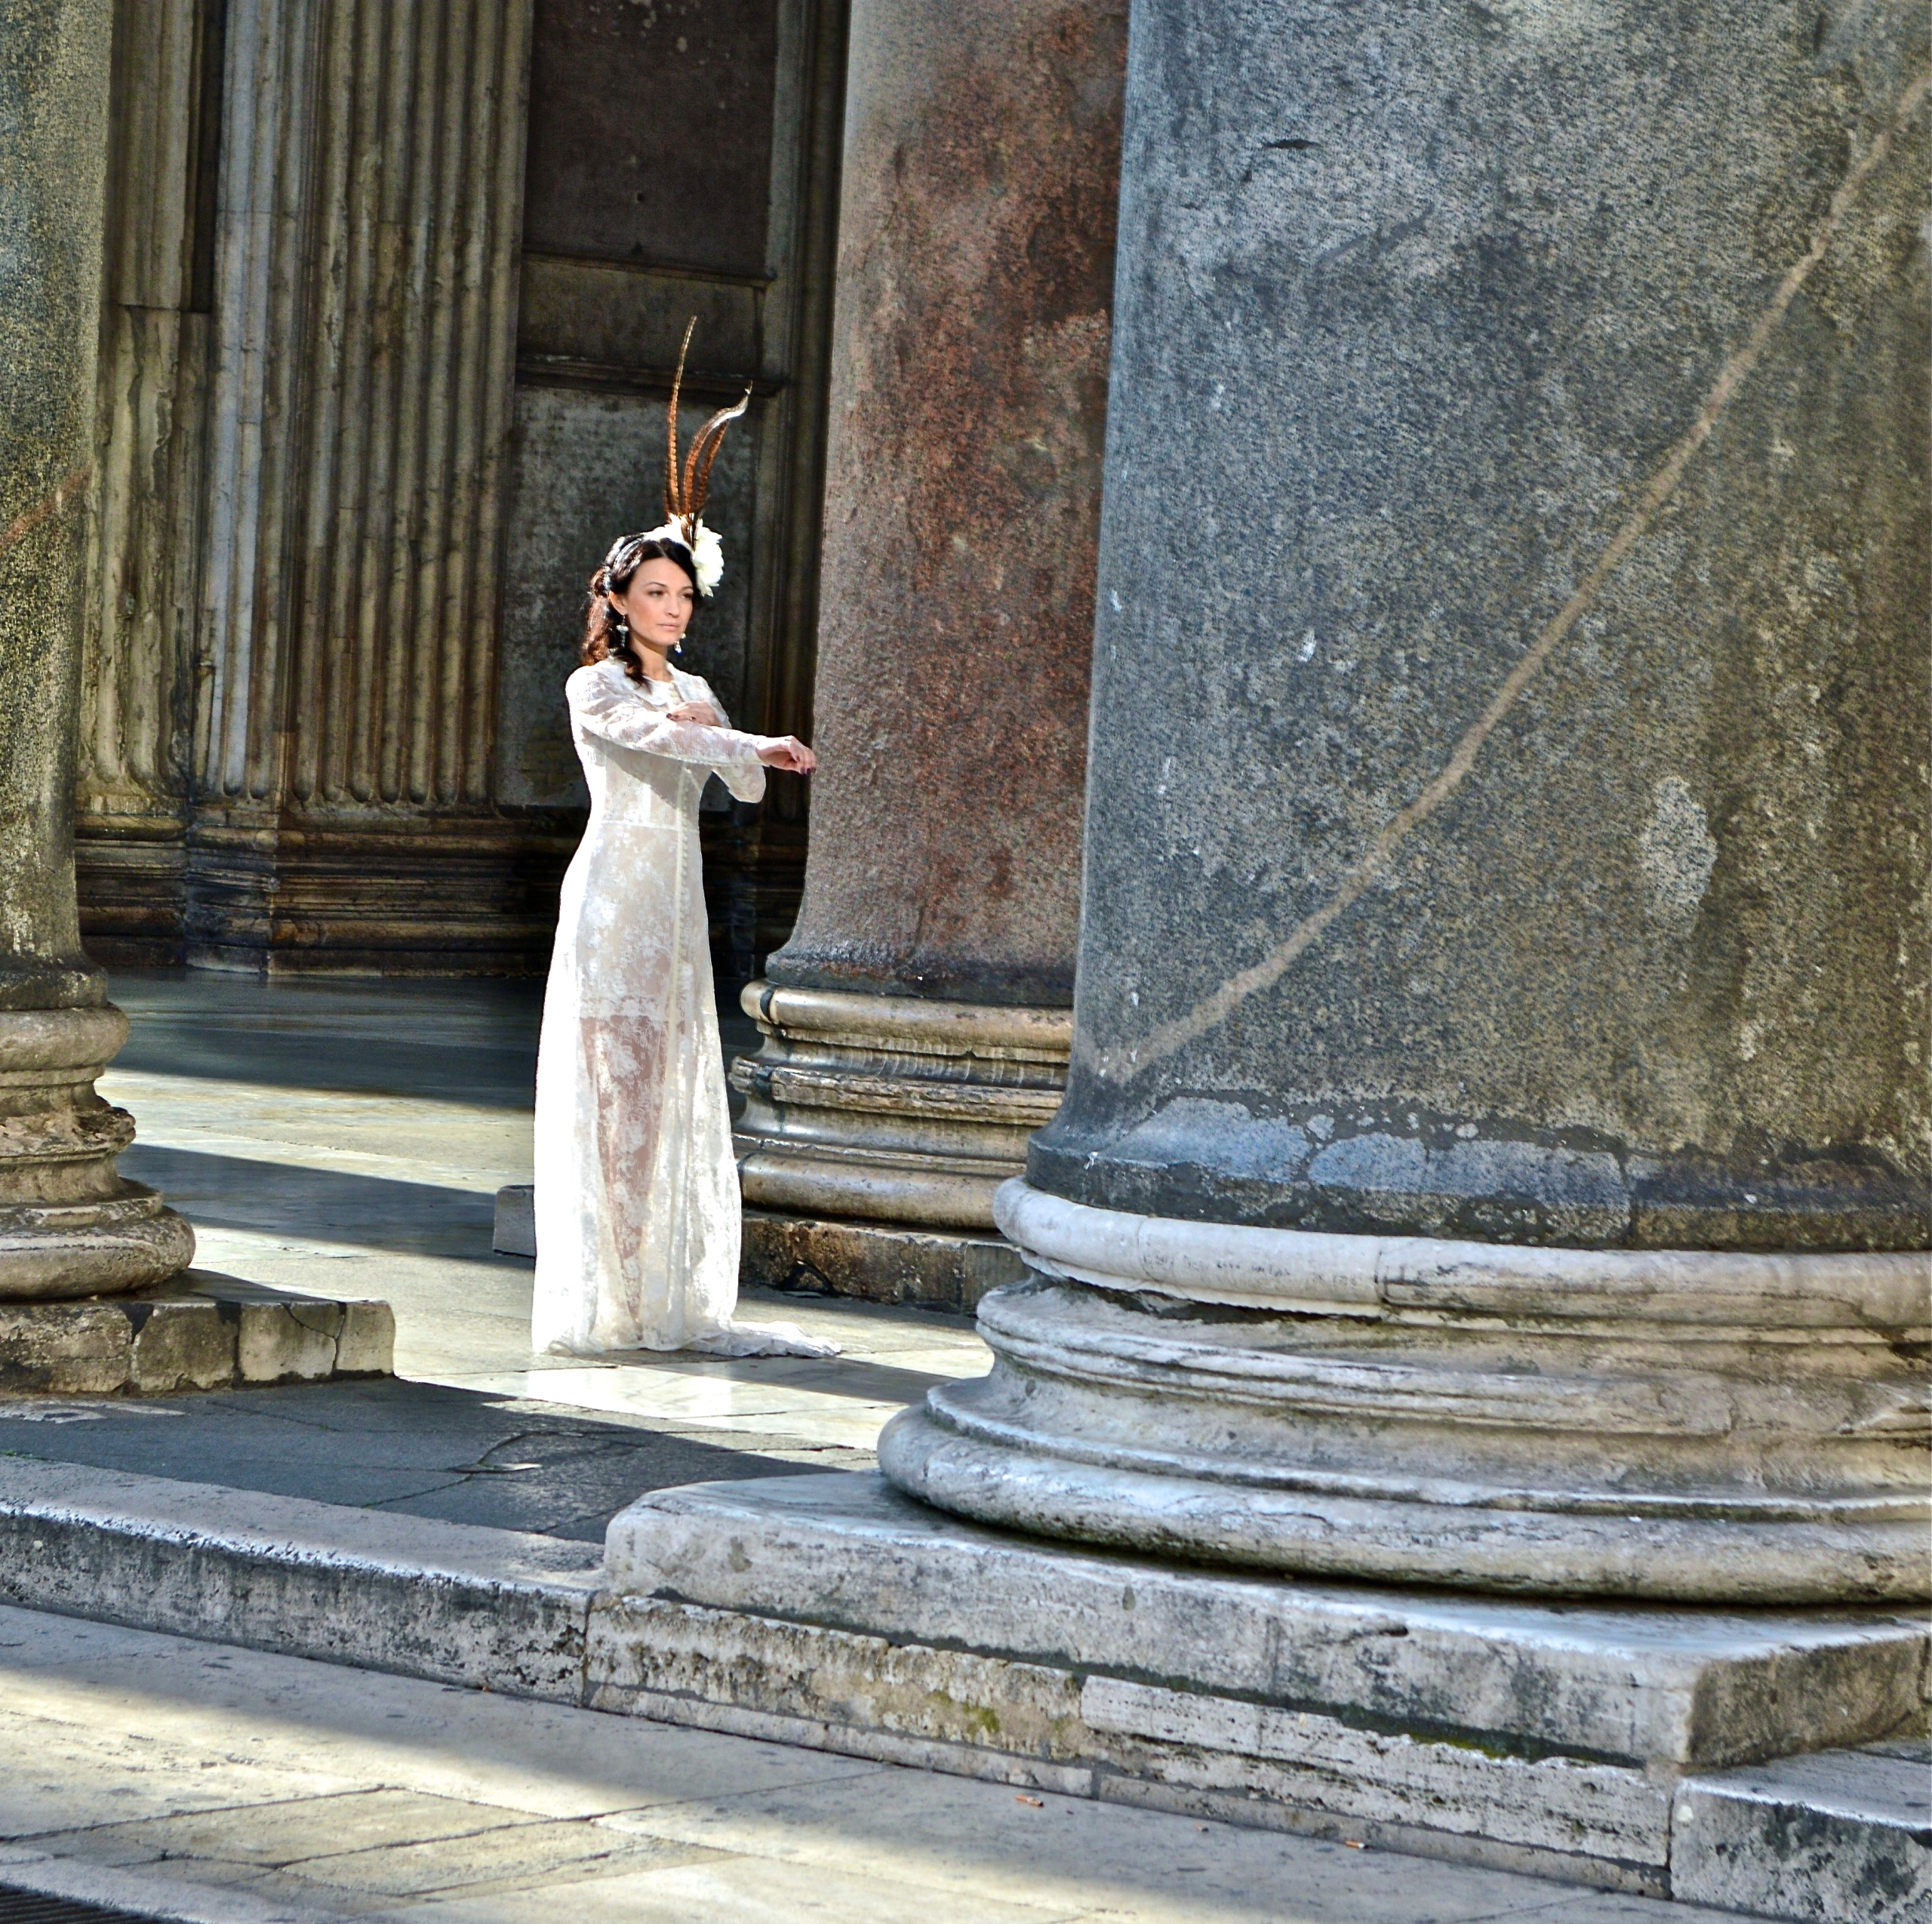 Model at the Pantheon